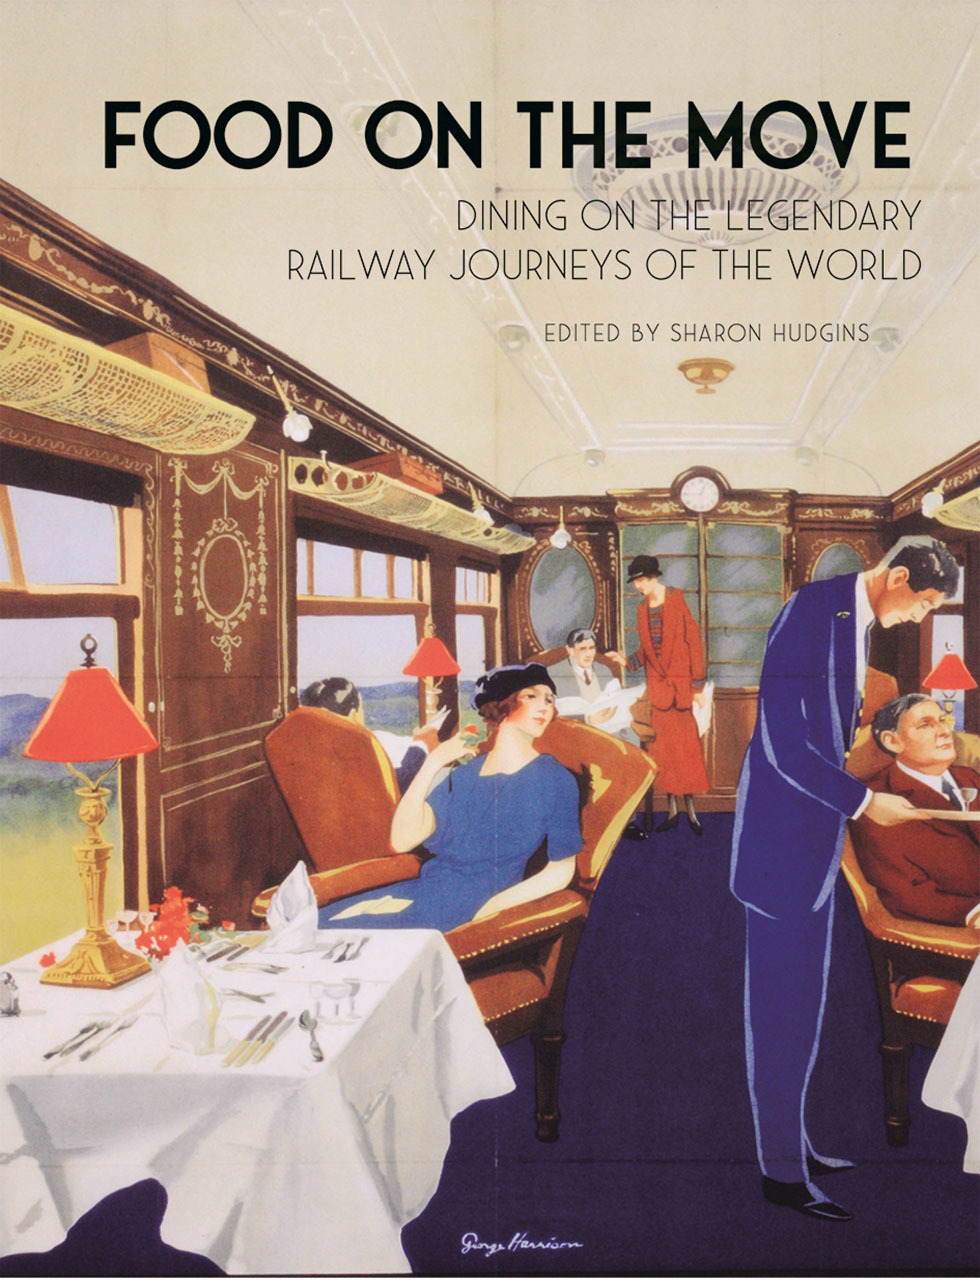 Food on the Move - Dining on the Legendary Railway Journeys of the World